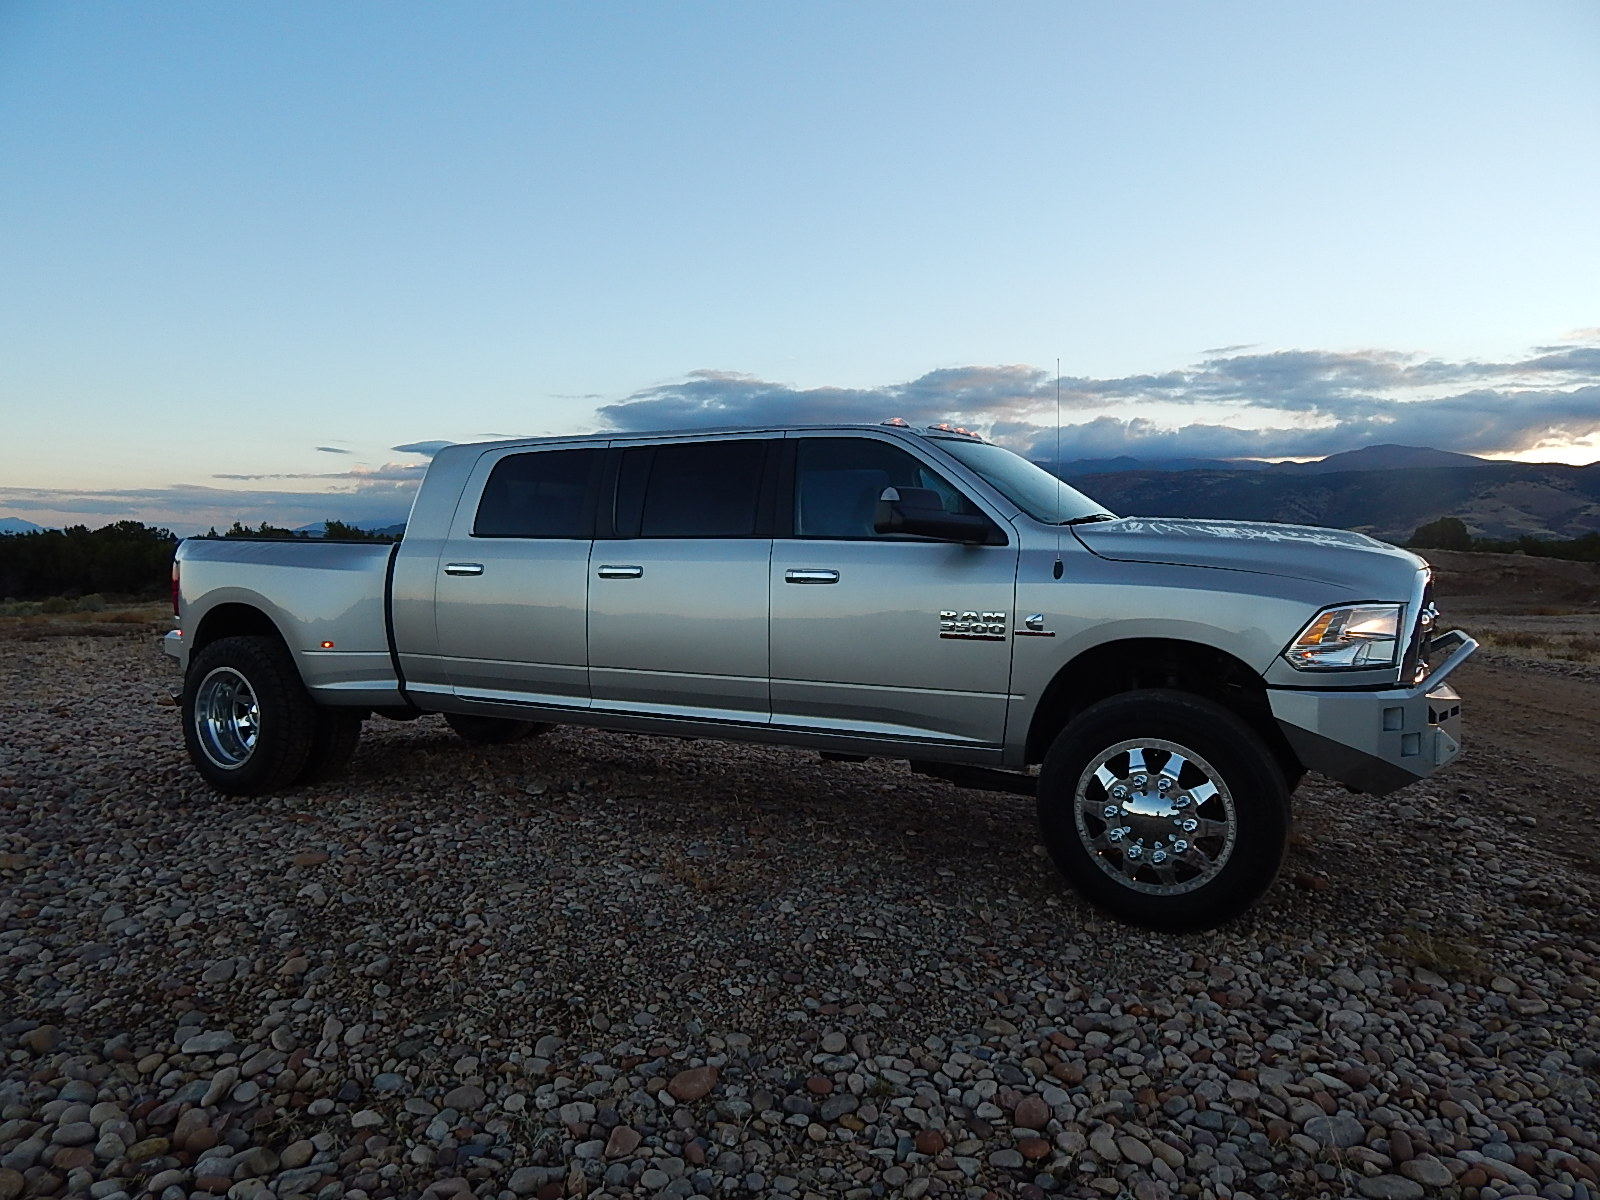 Ram 1500 Running Boards >> MEGA X 2 6 door Dodge 6 Door Ford 6 Door Chev 6 door Mega Cab Six doorMEGA X 2